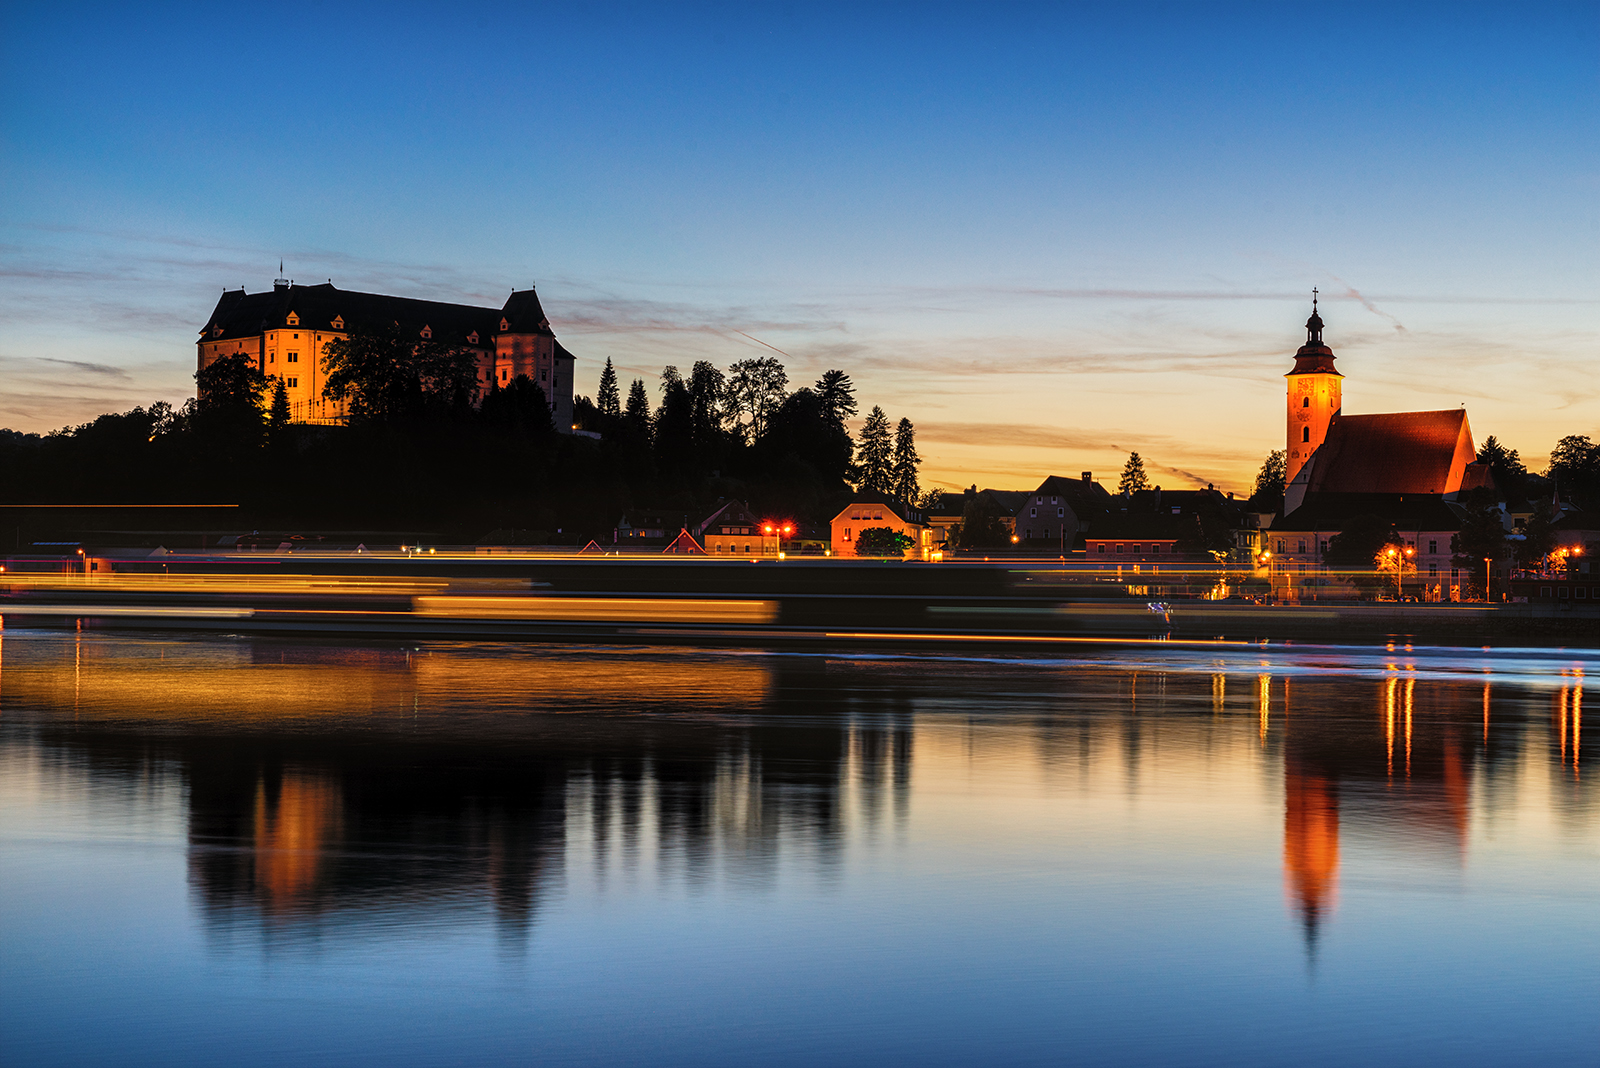 Geis, austria, long exposure, sunset, hdr, sony, sony a7r, castle, church, water, blue, yellow